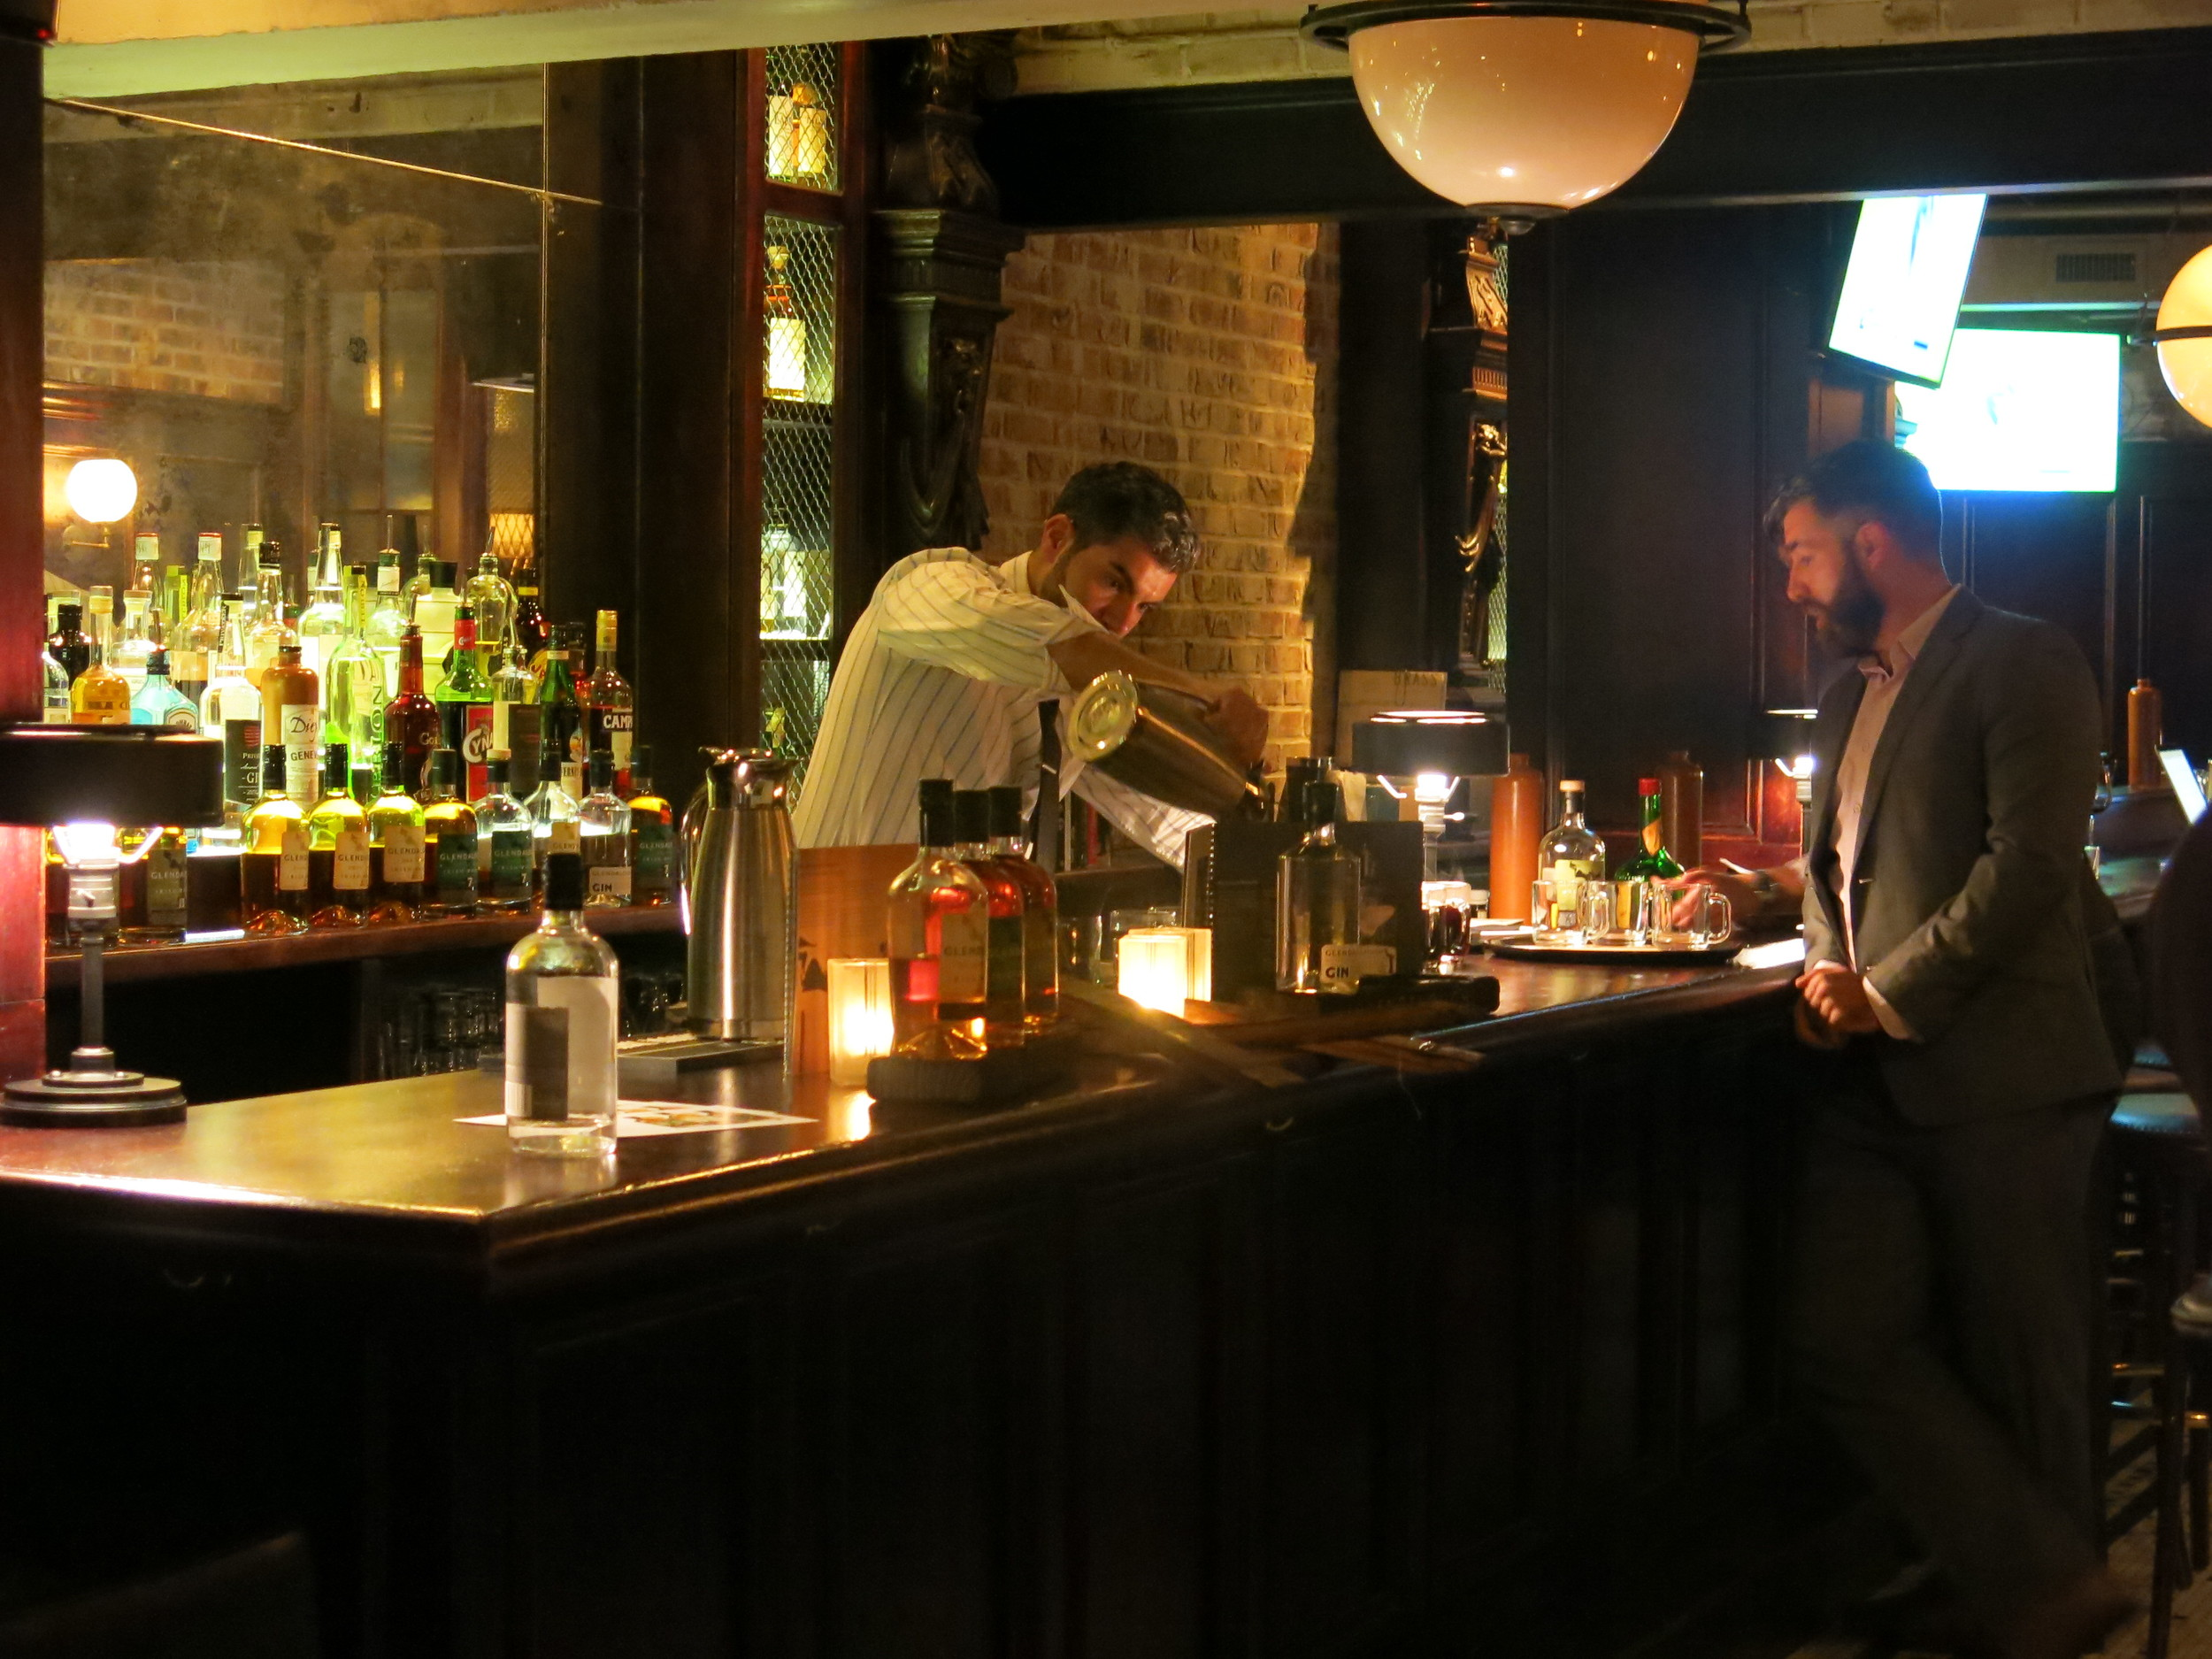 Paulo whips up drinks while Donal looks on.